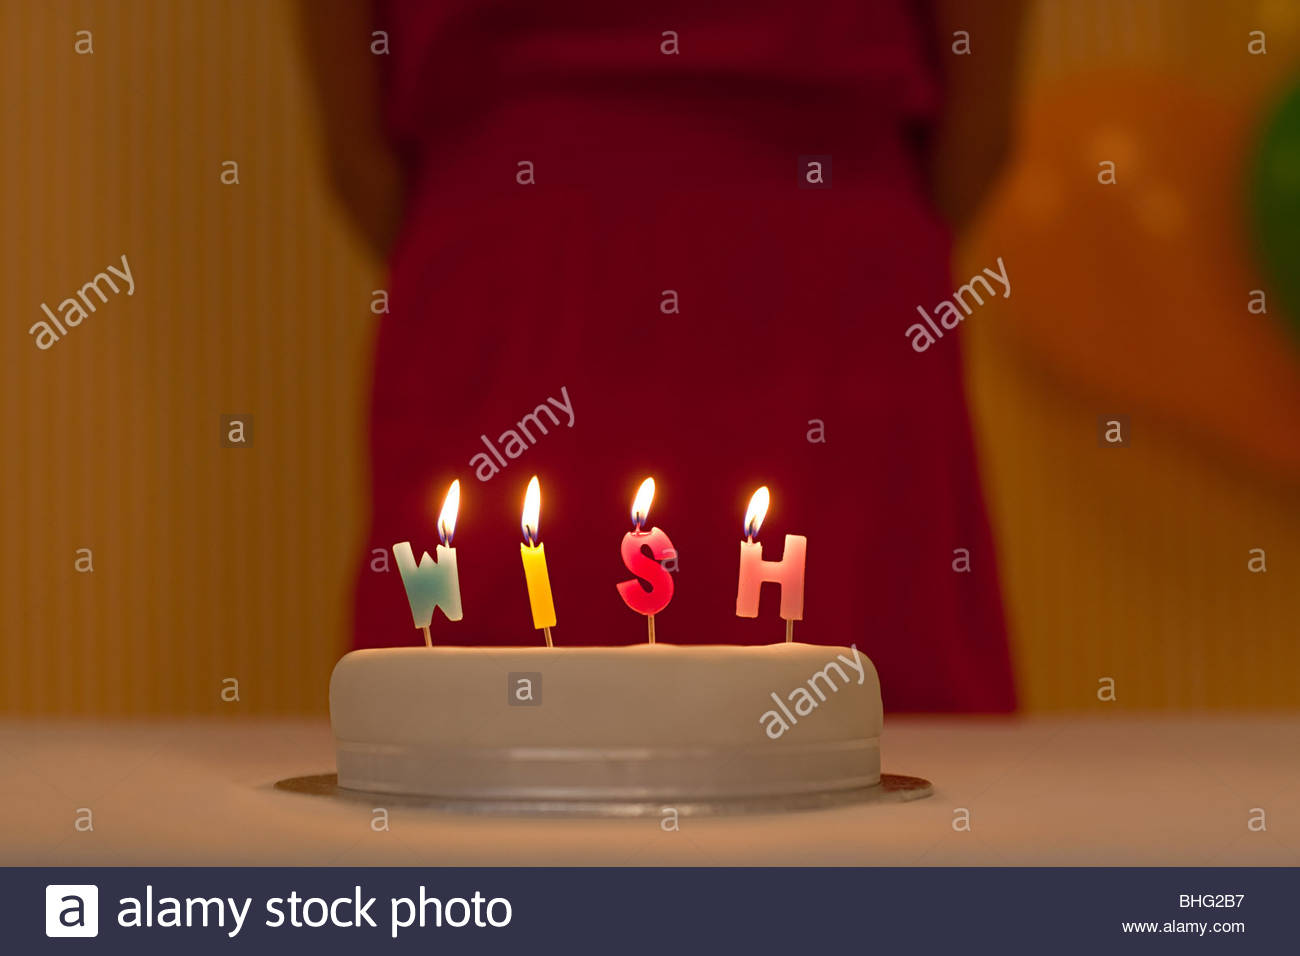 Birthday cake with wish written in candles - Stock Image